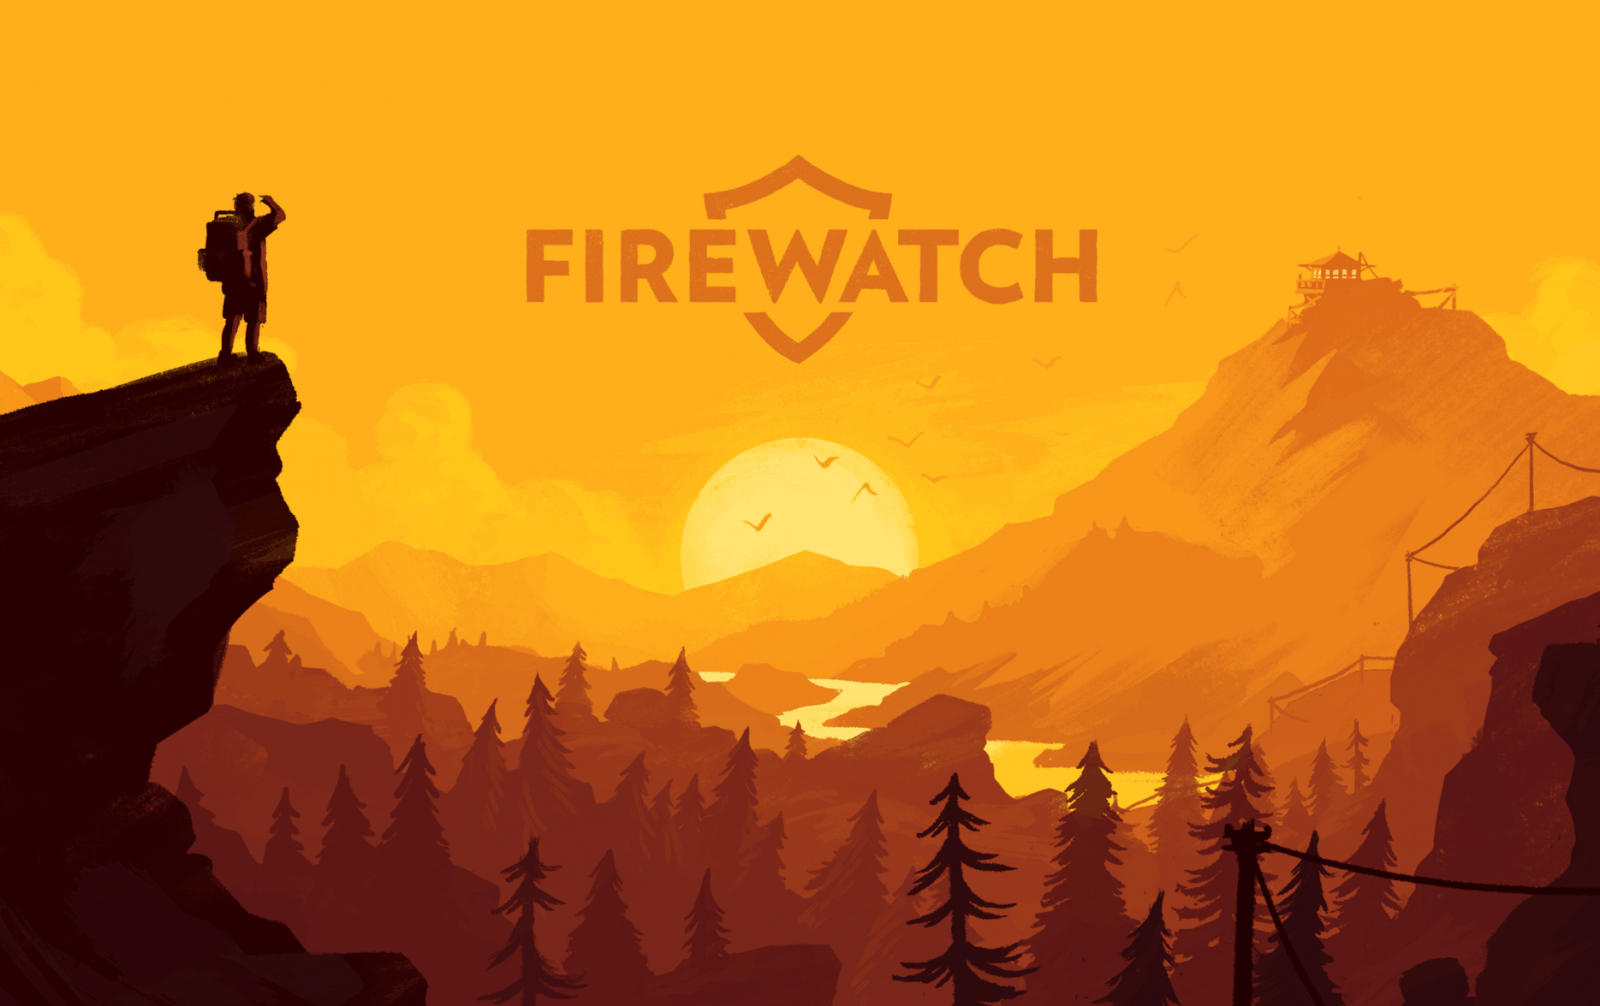 Adventure Time Wallpaper Hd Android Cult Of Android Firewatch Could Be The Prettiest Mystery